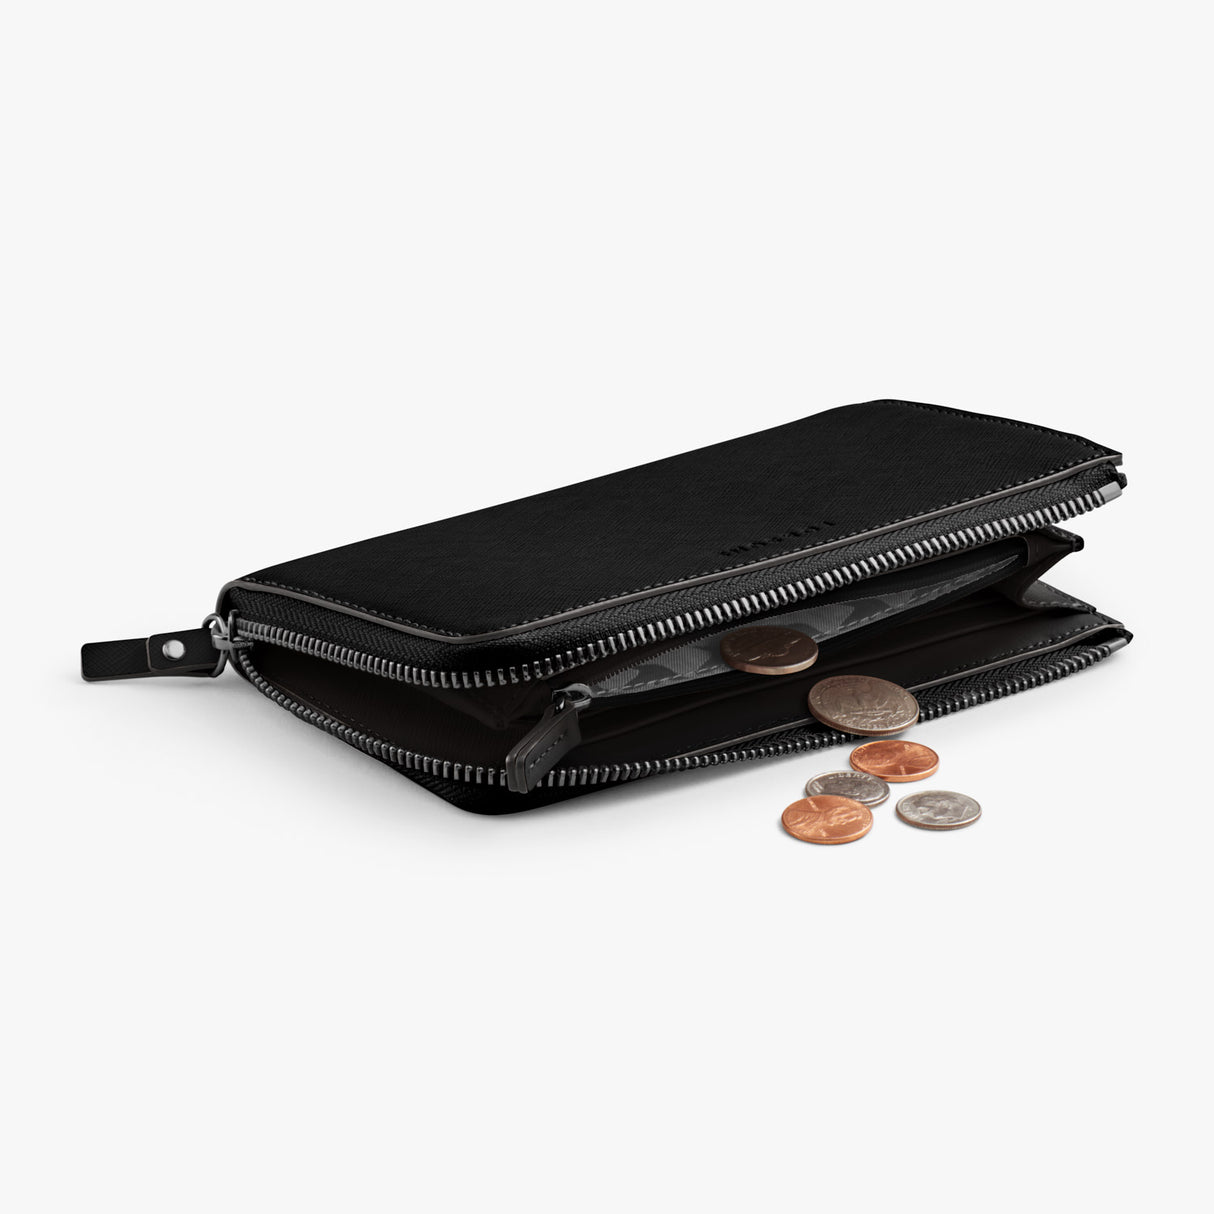 Coins - Leather Wallet - Saffiano Leather - Black / Gunmetal / Grey - Small Accessory - Lo & Sons